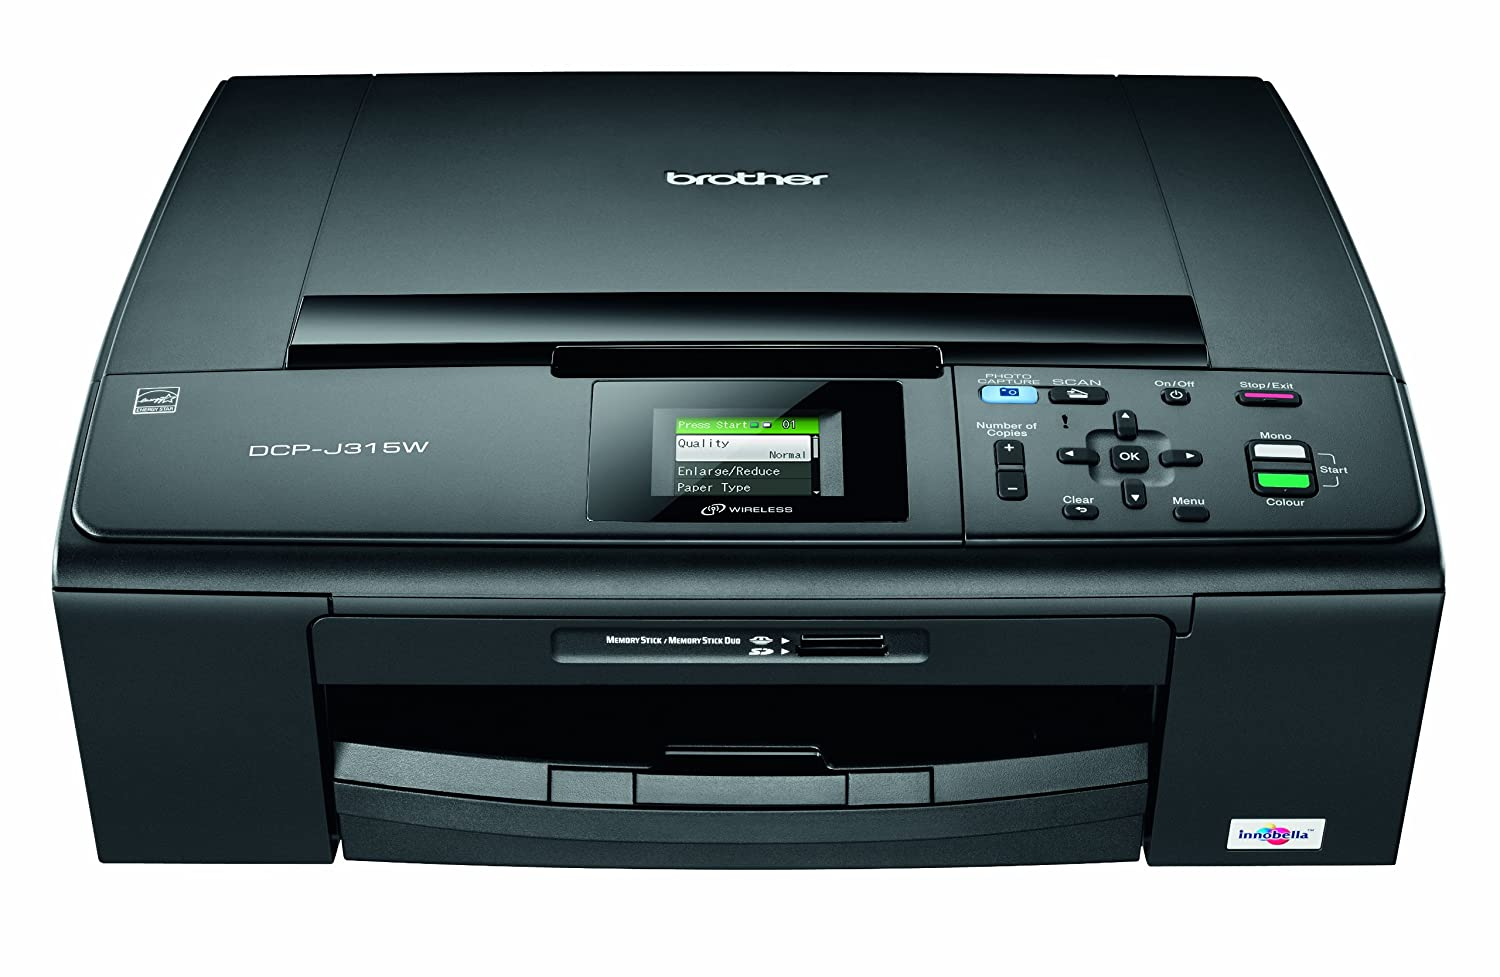 BROTHER DCP-J315W SCANNER WINDOWS 10 DRIVER